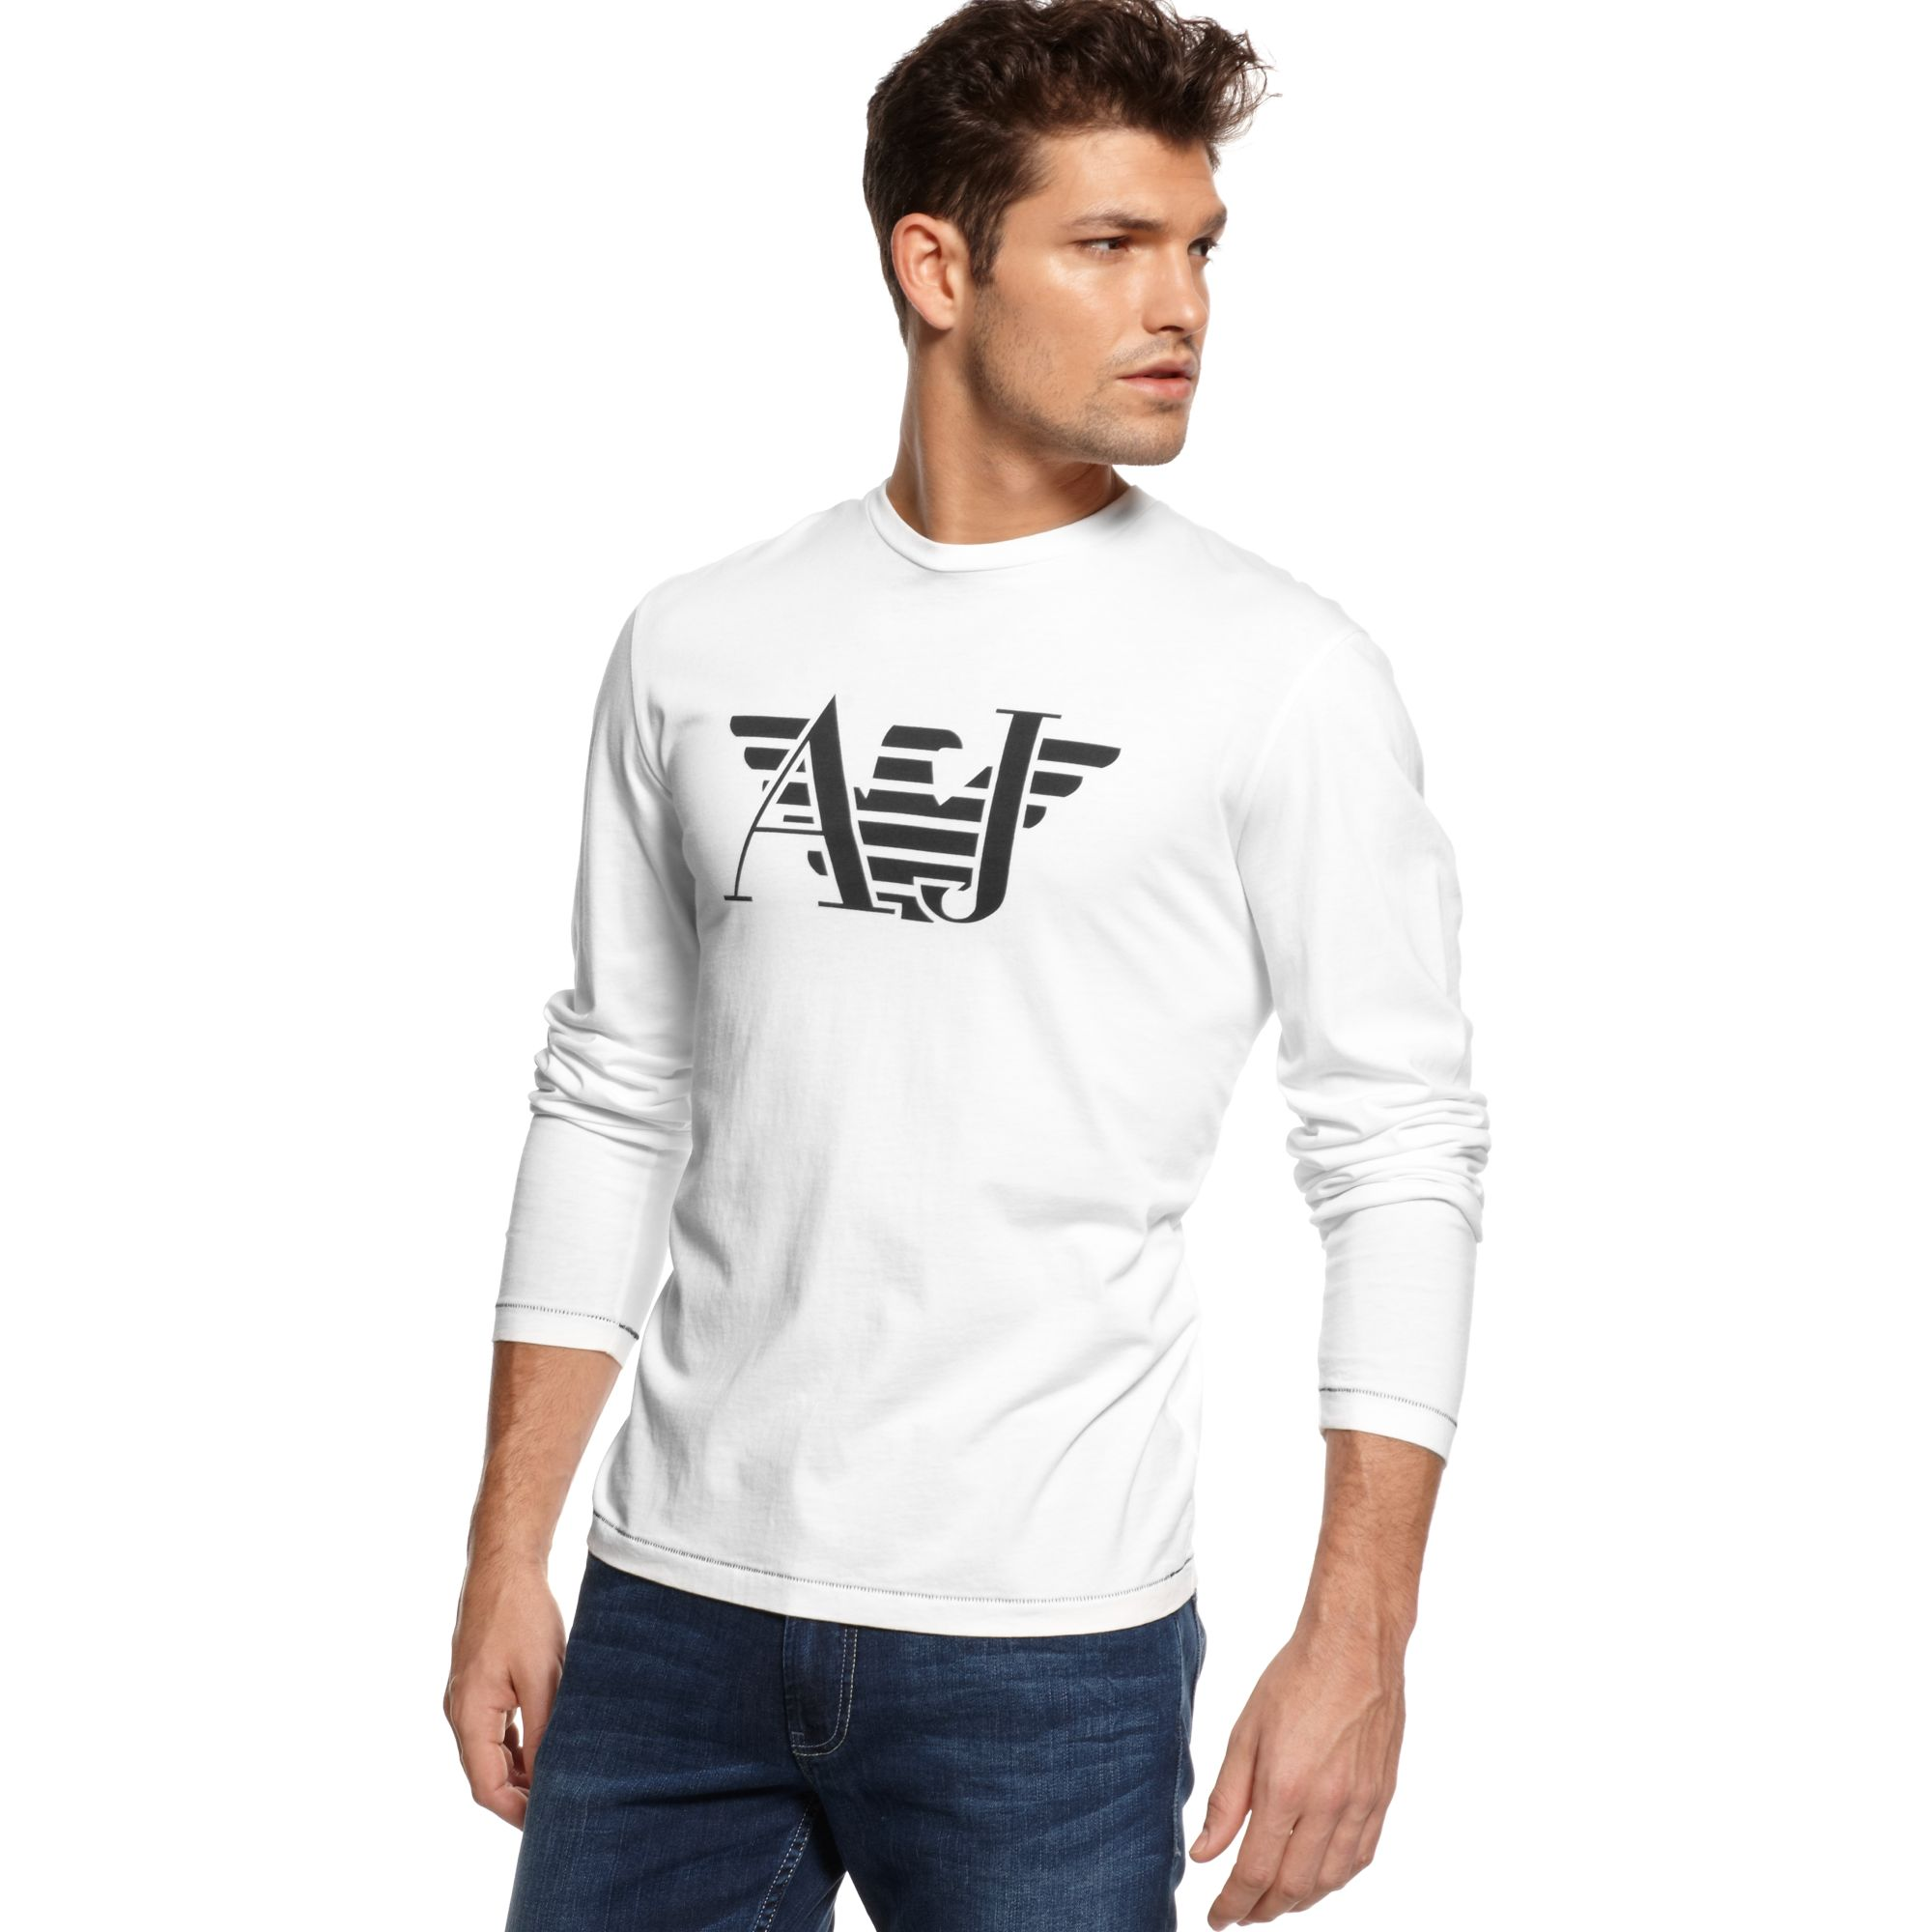 armani jeans long sleeve aj eagle tshirt in white for men lyst. Black Bedroom Furniture Sets. Home Design Ideas